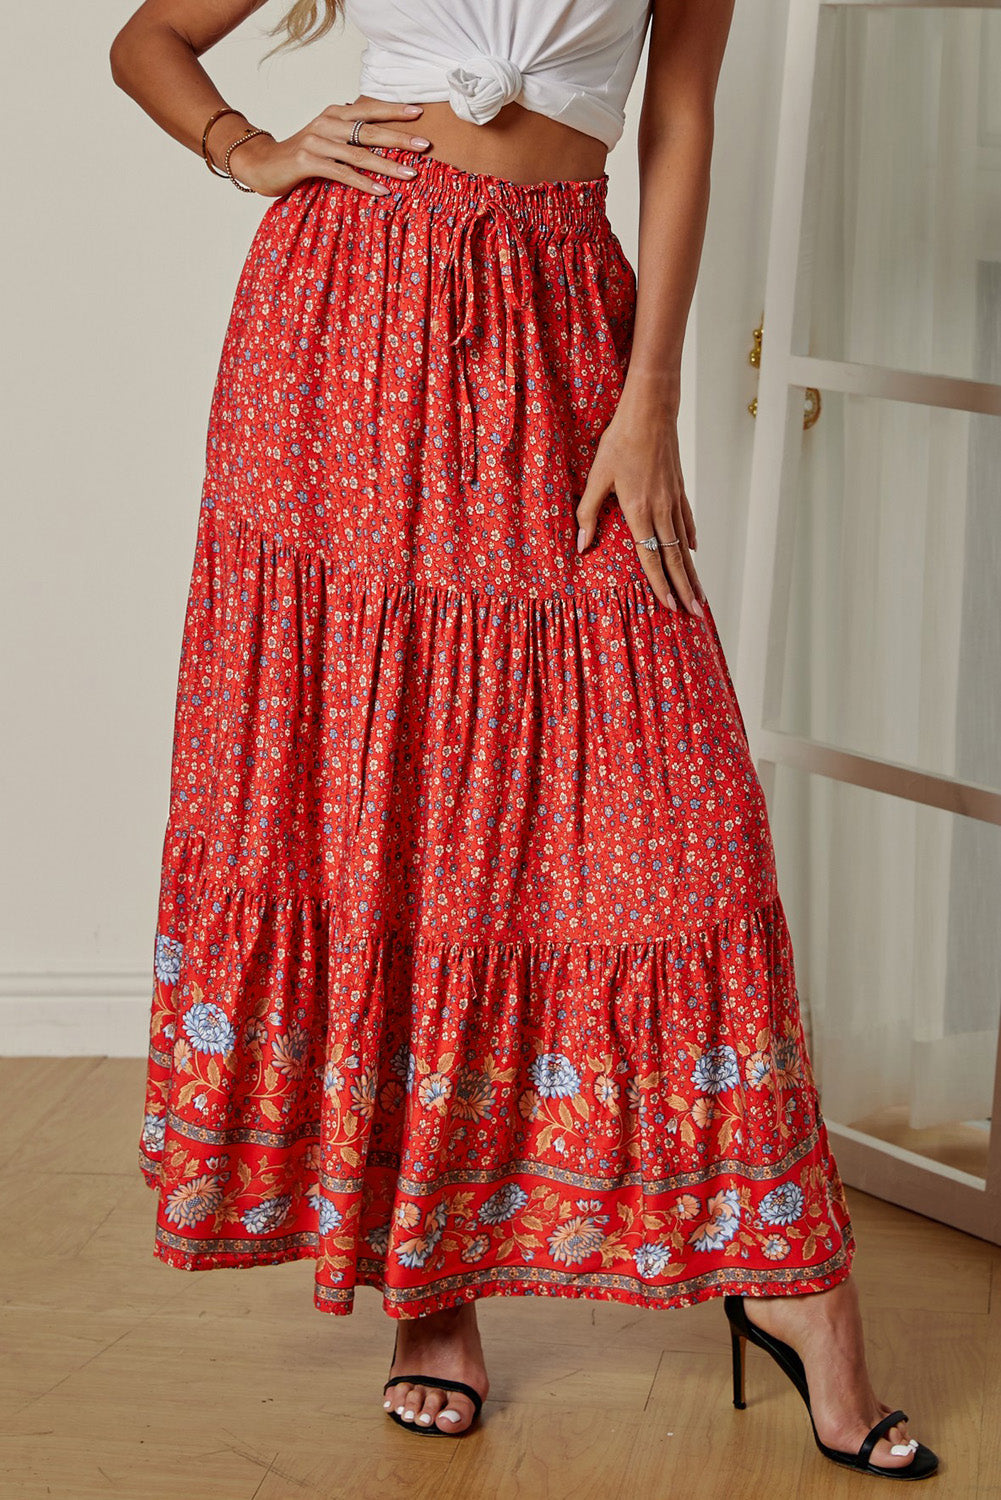 Red Boho Floral Print Elastic High Waist Pleated A Line Maxi Skirt